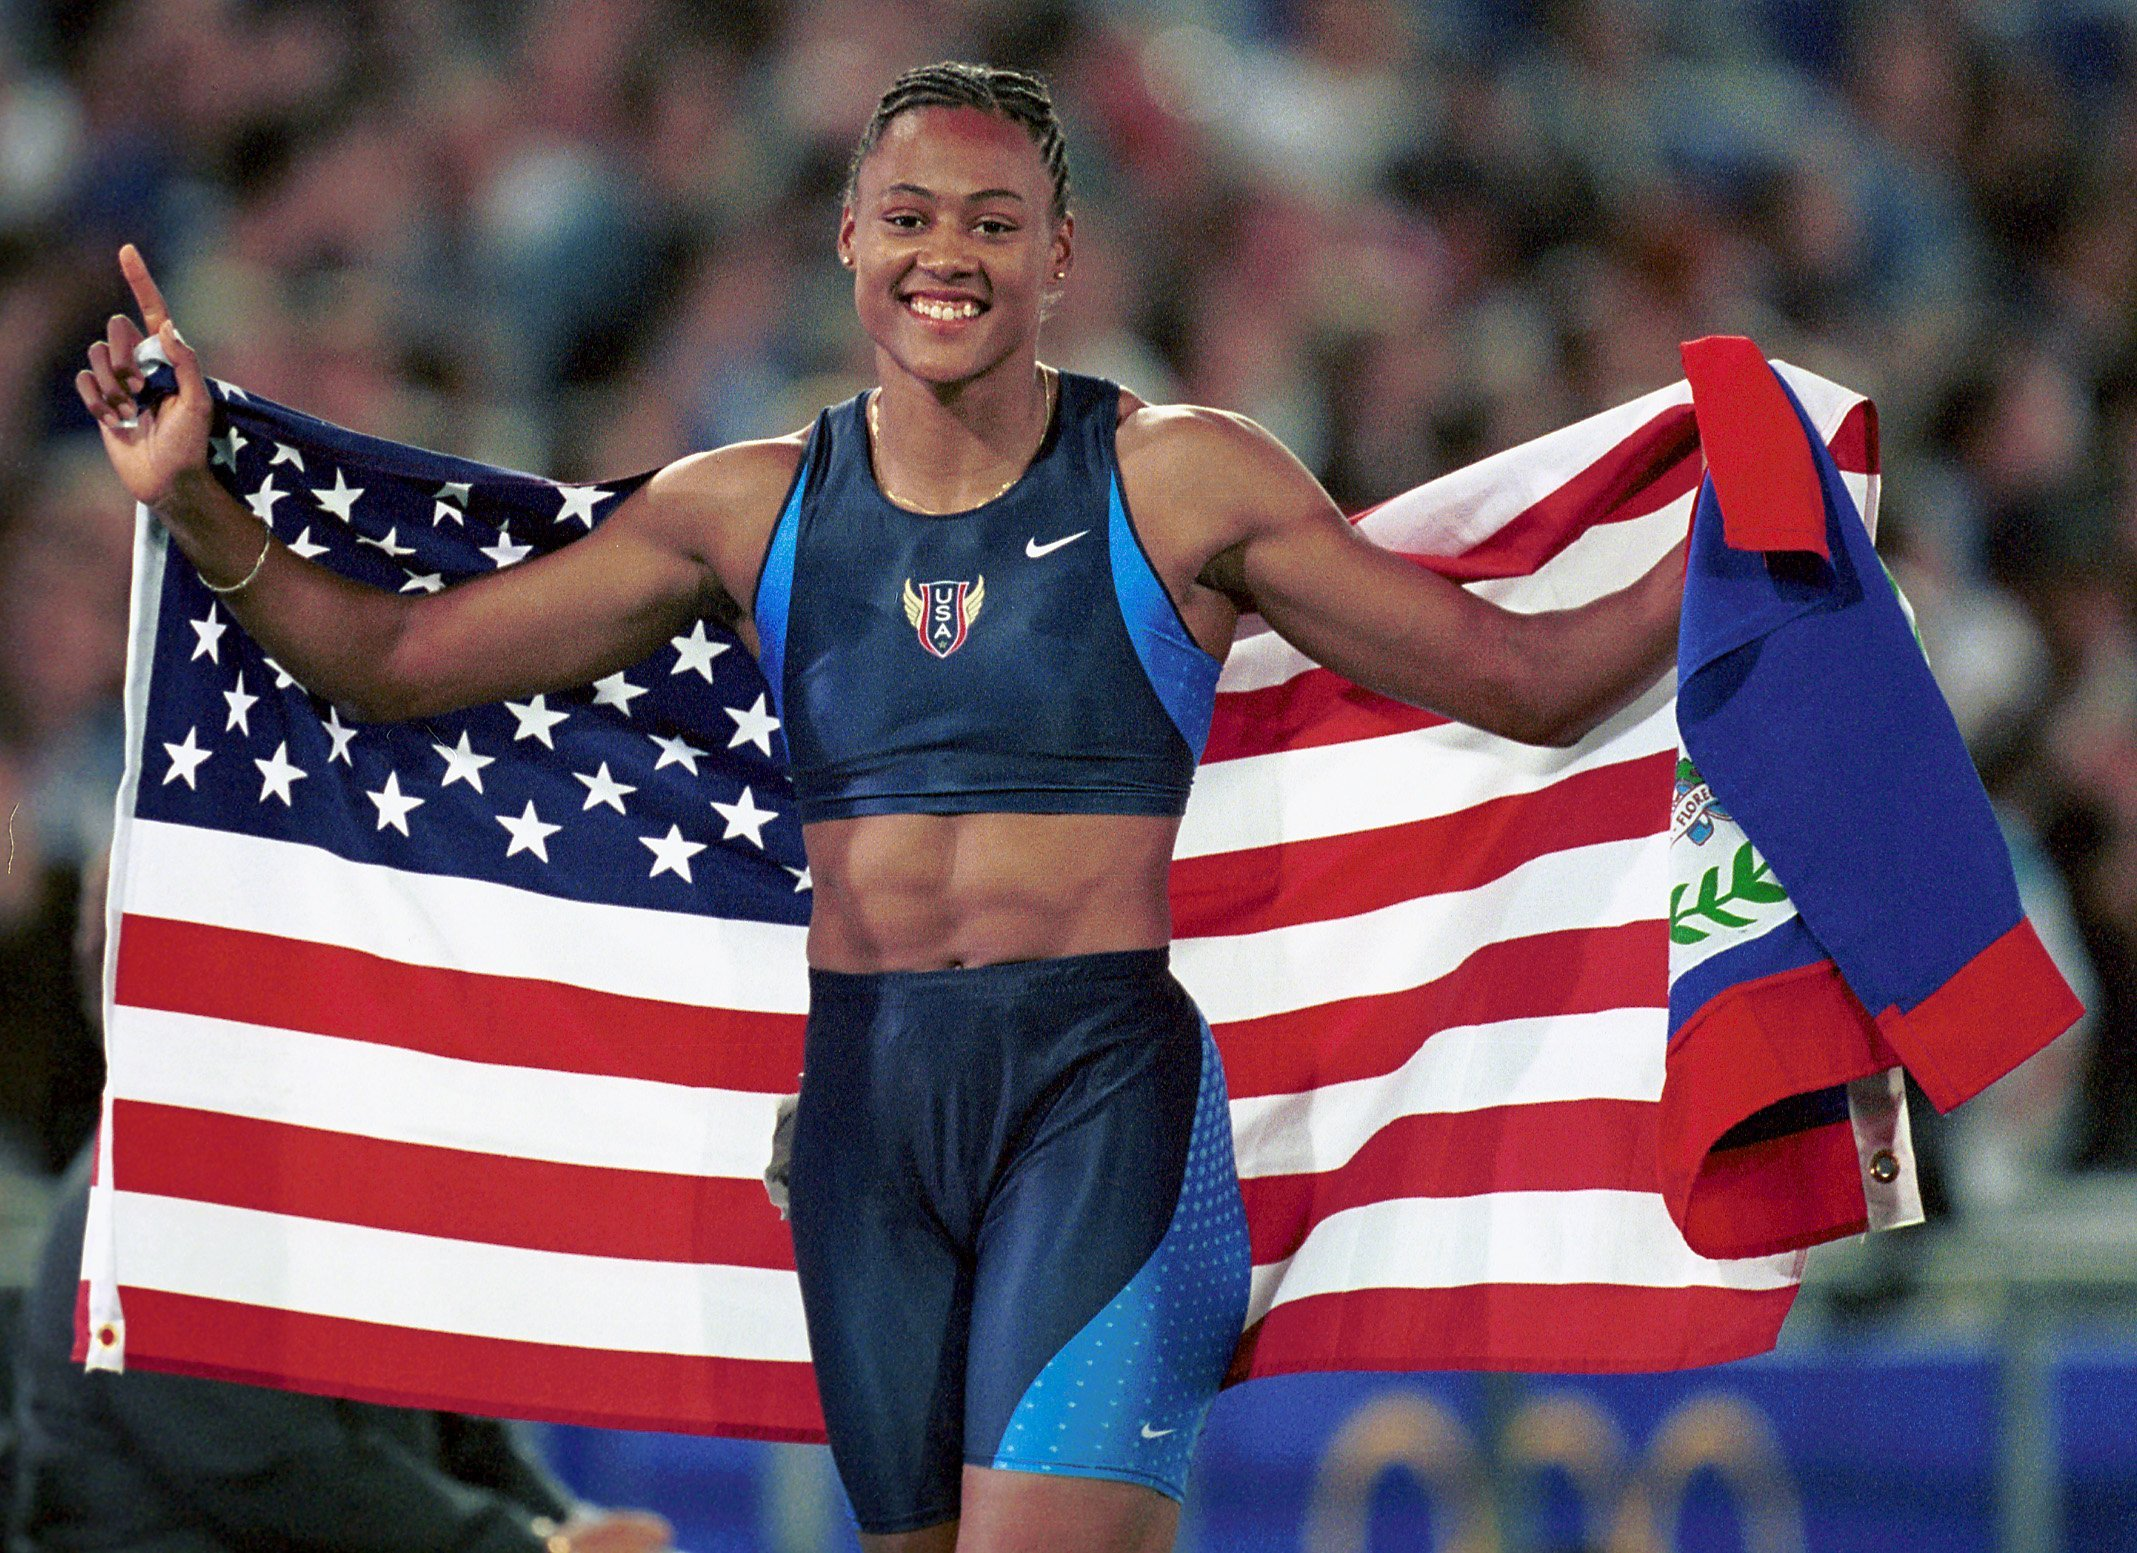 Marion Jones of the US after winning the Women's 200 meter gold medal at the 2000 Olympics in September 2000 | Photo: Getty Images